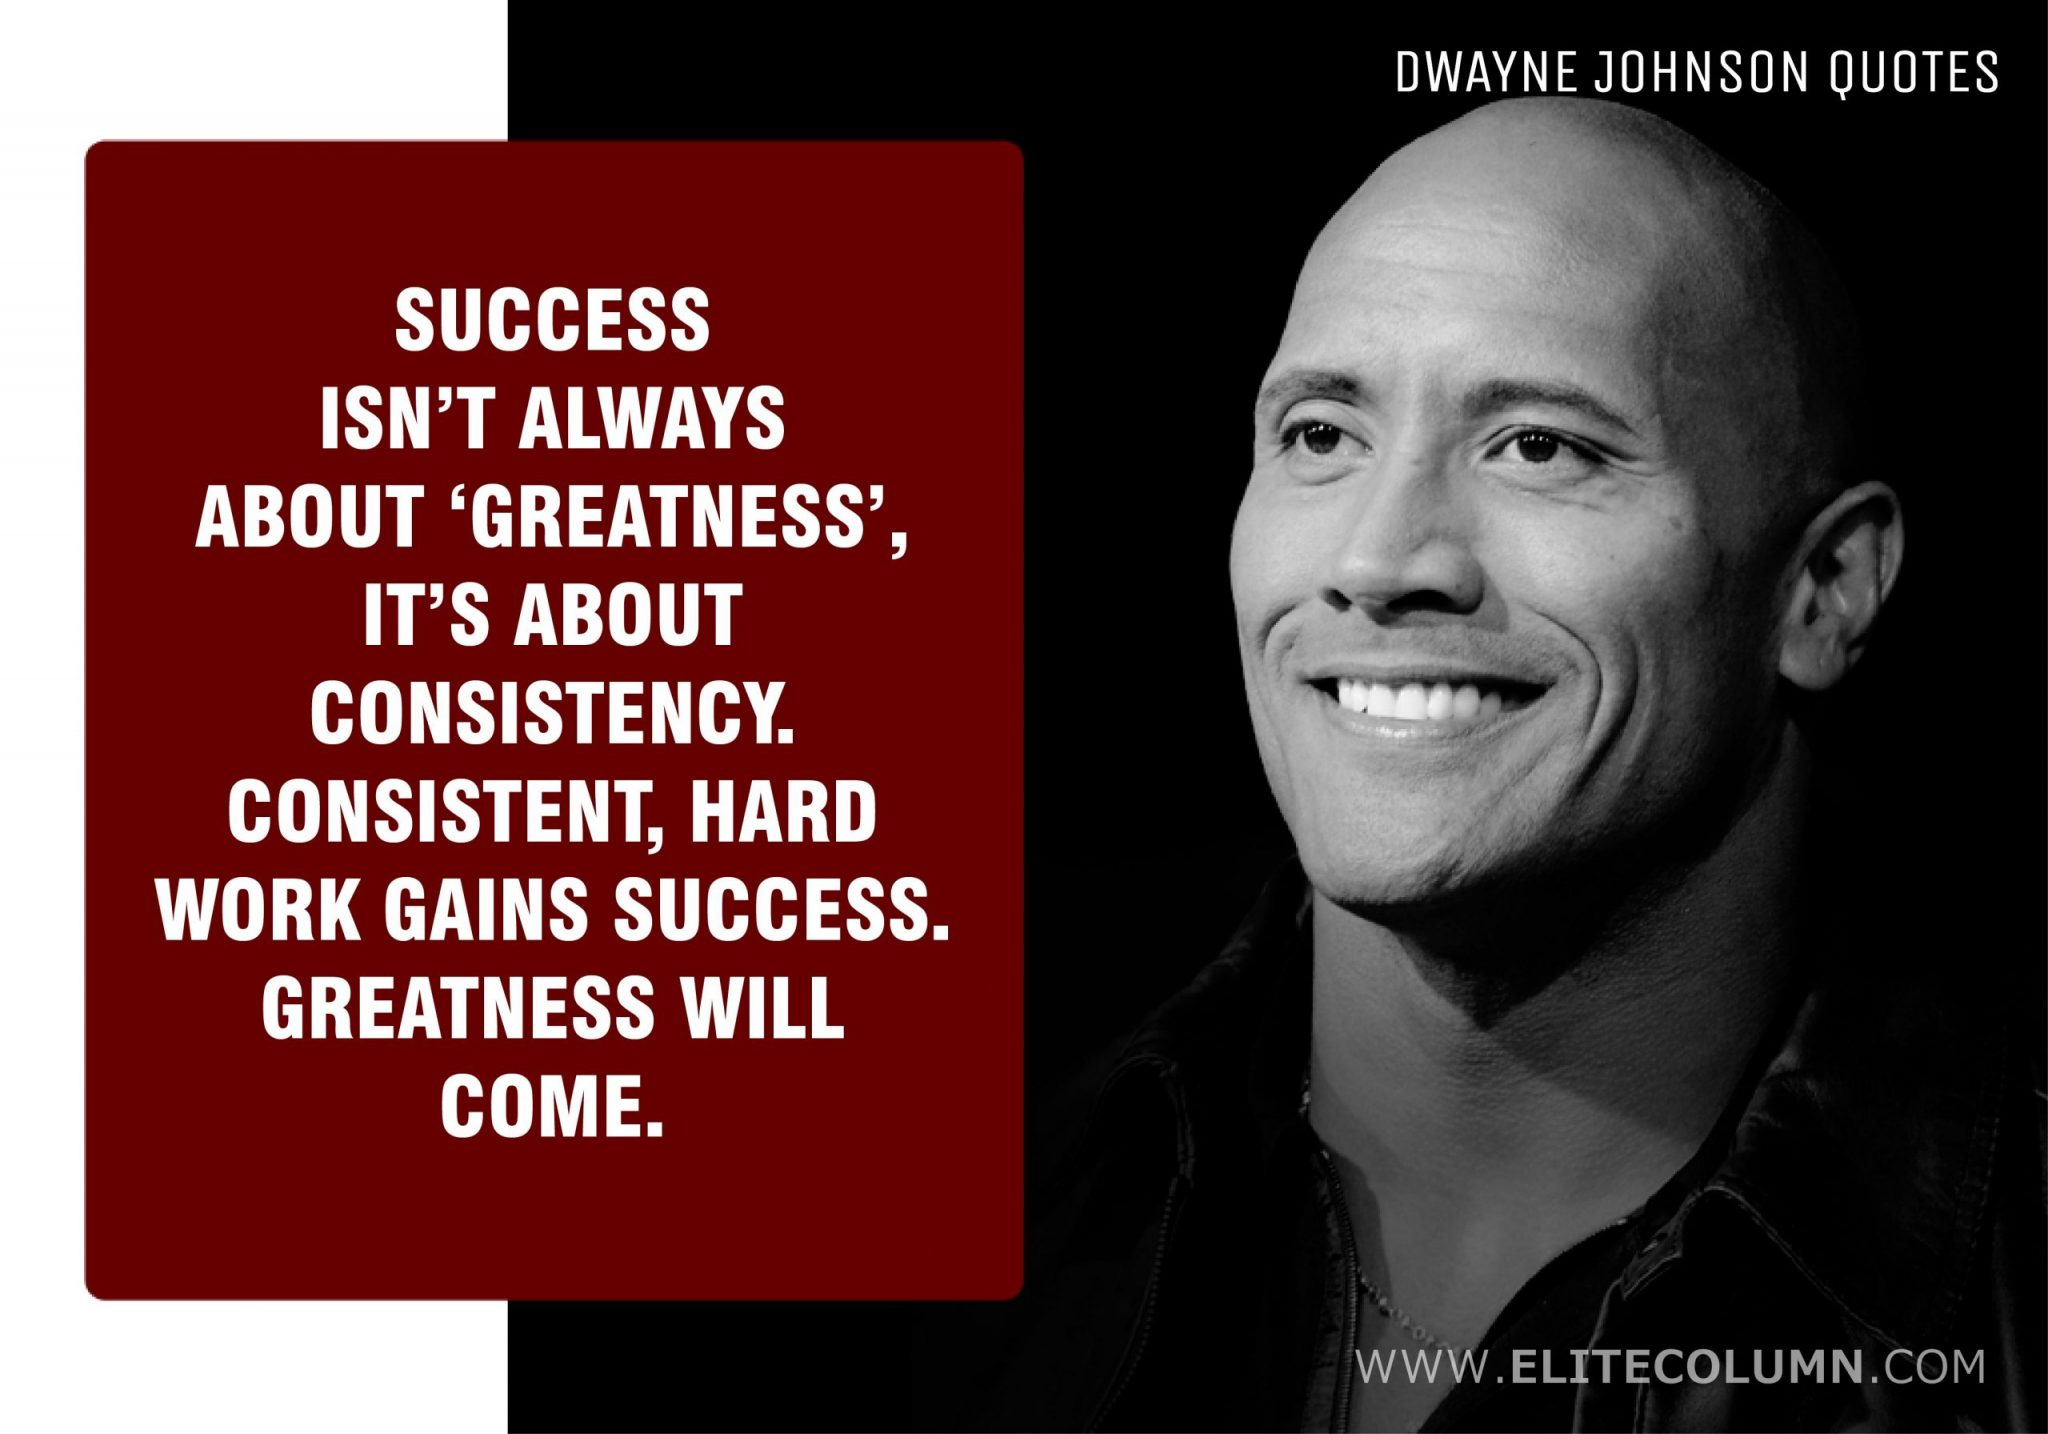 Dwayne Johnson Quotes (10)